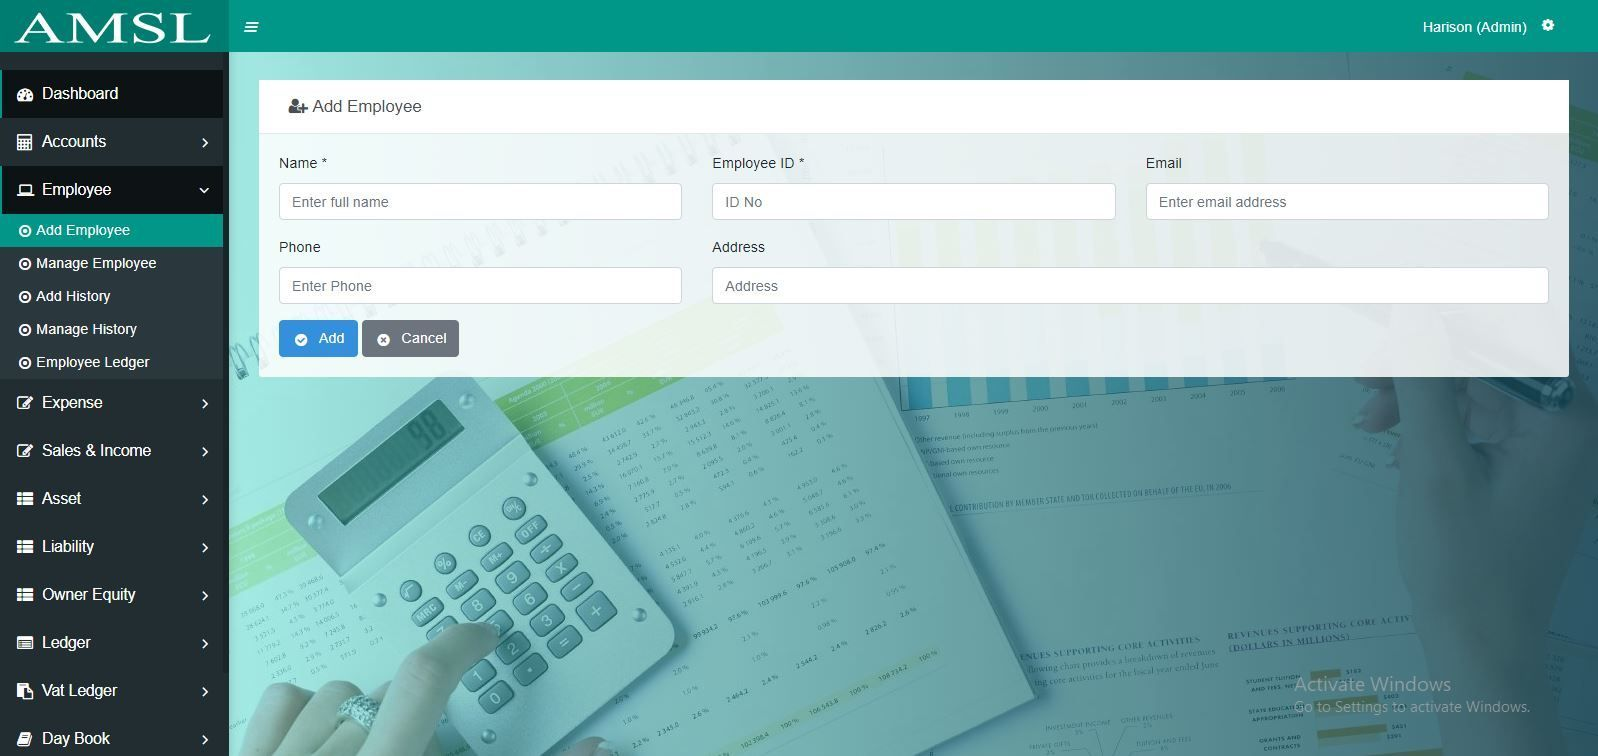 AMSL - Service Based Accounting Management System  Screenshot 2